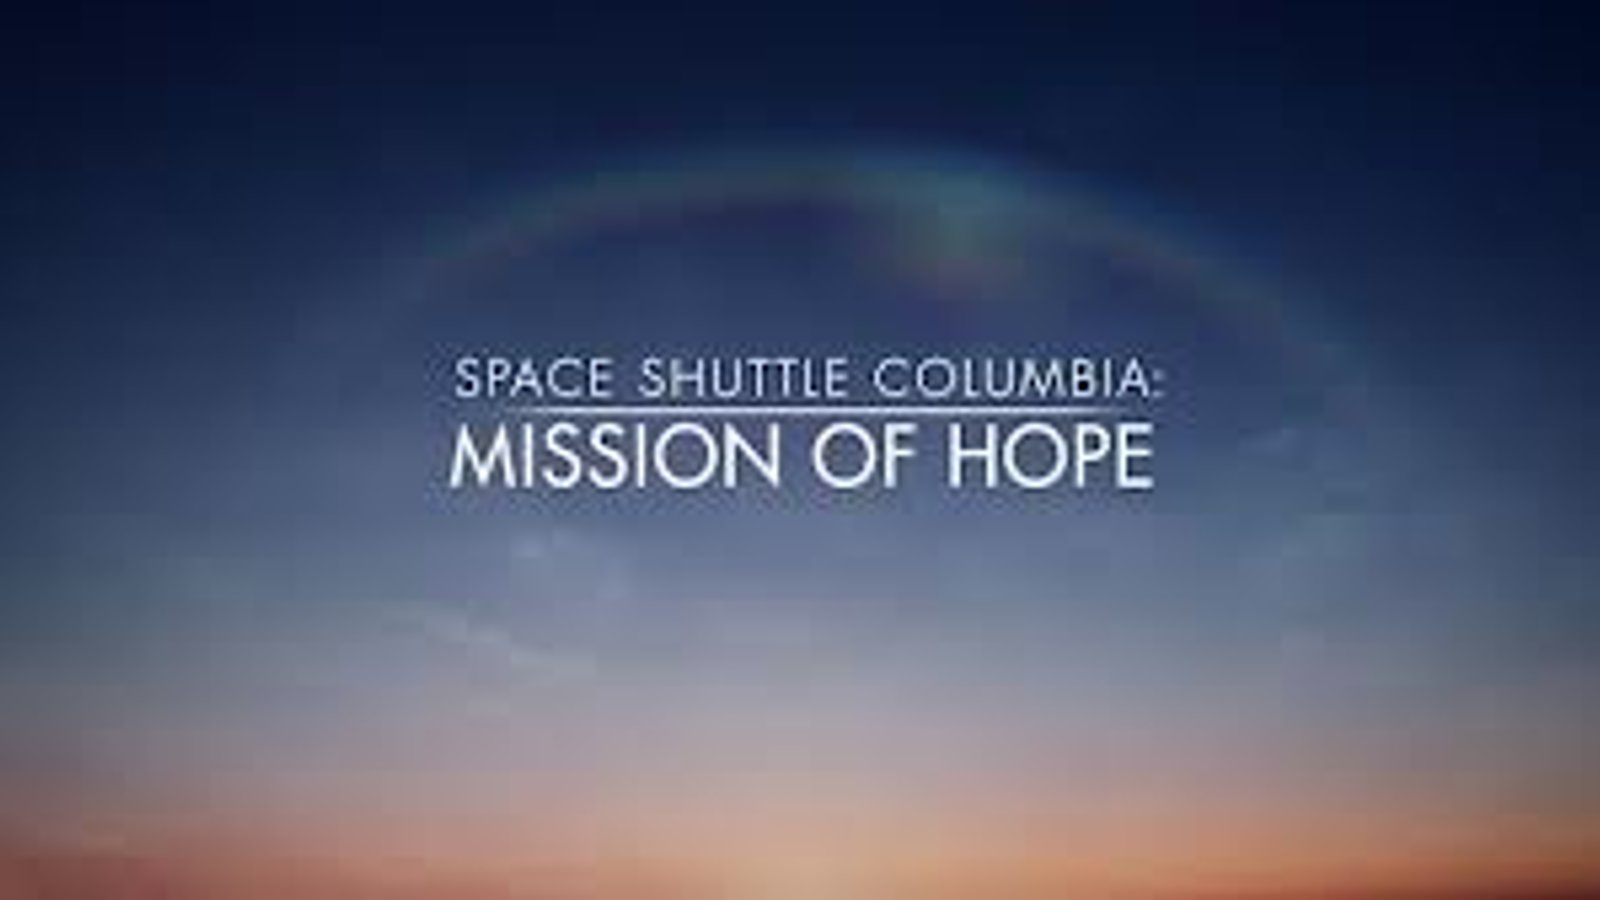 Space Shuttle Columbia - Mission of Hope